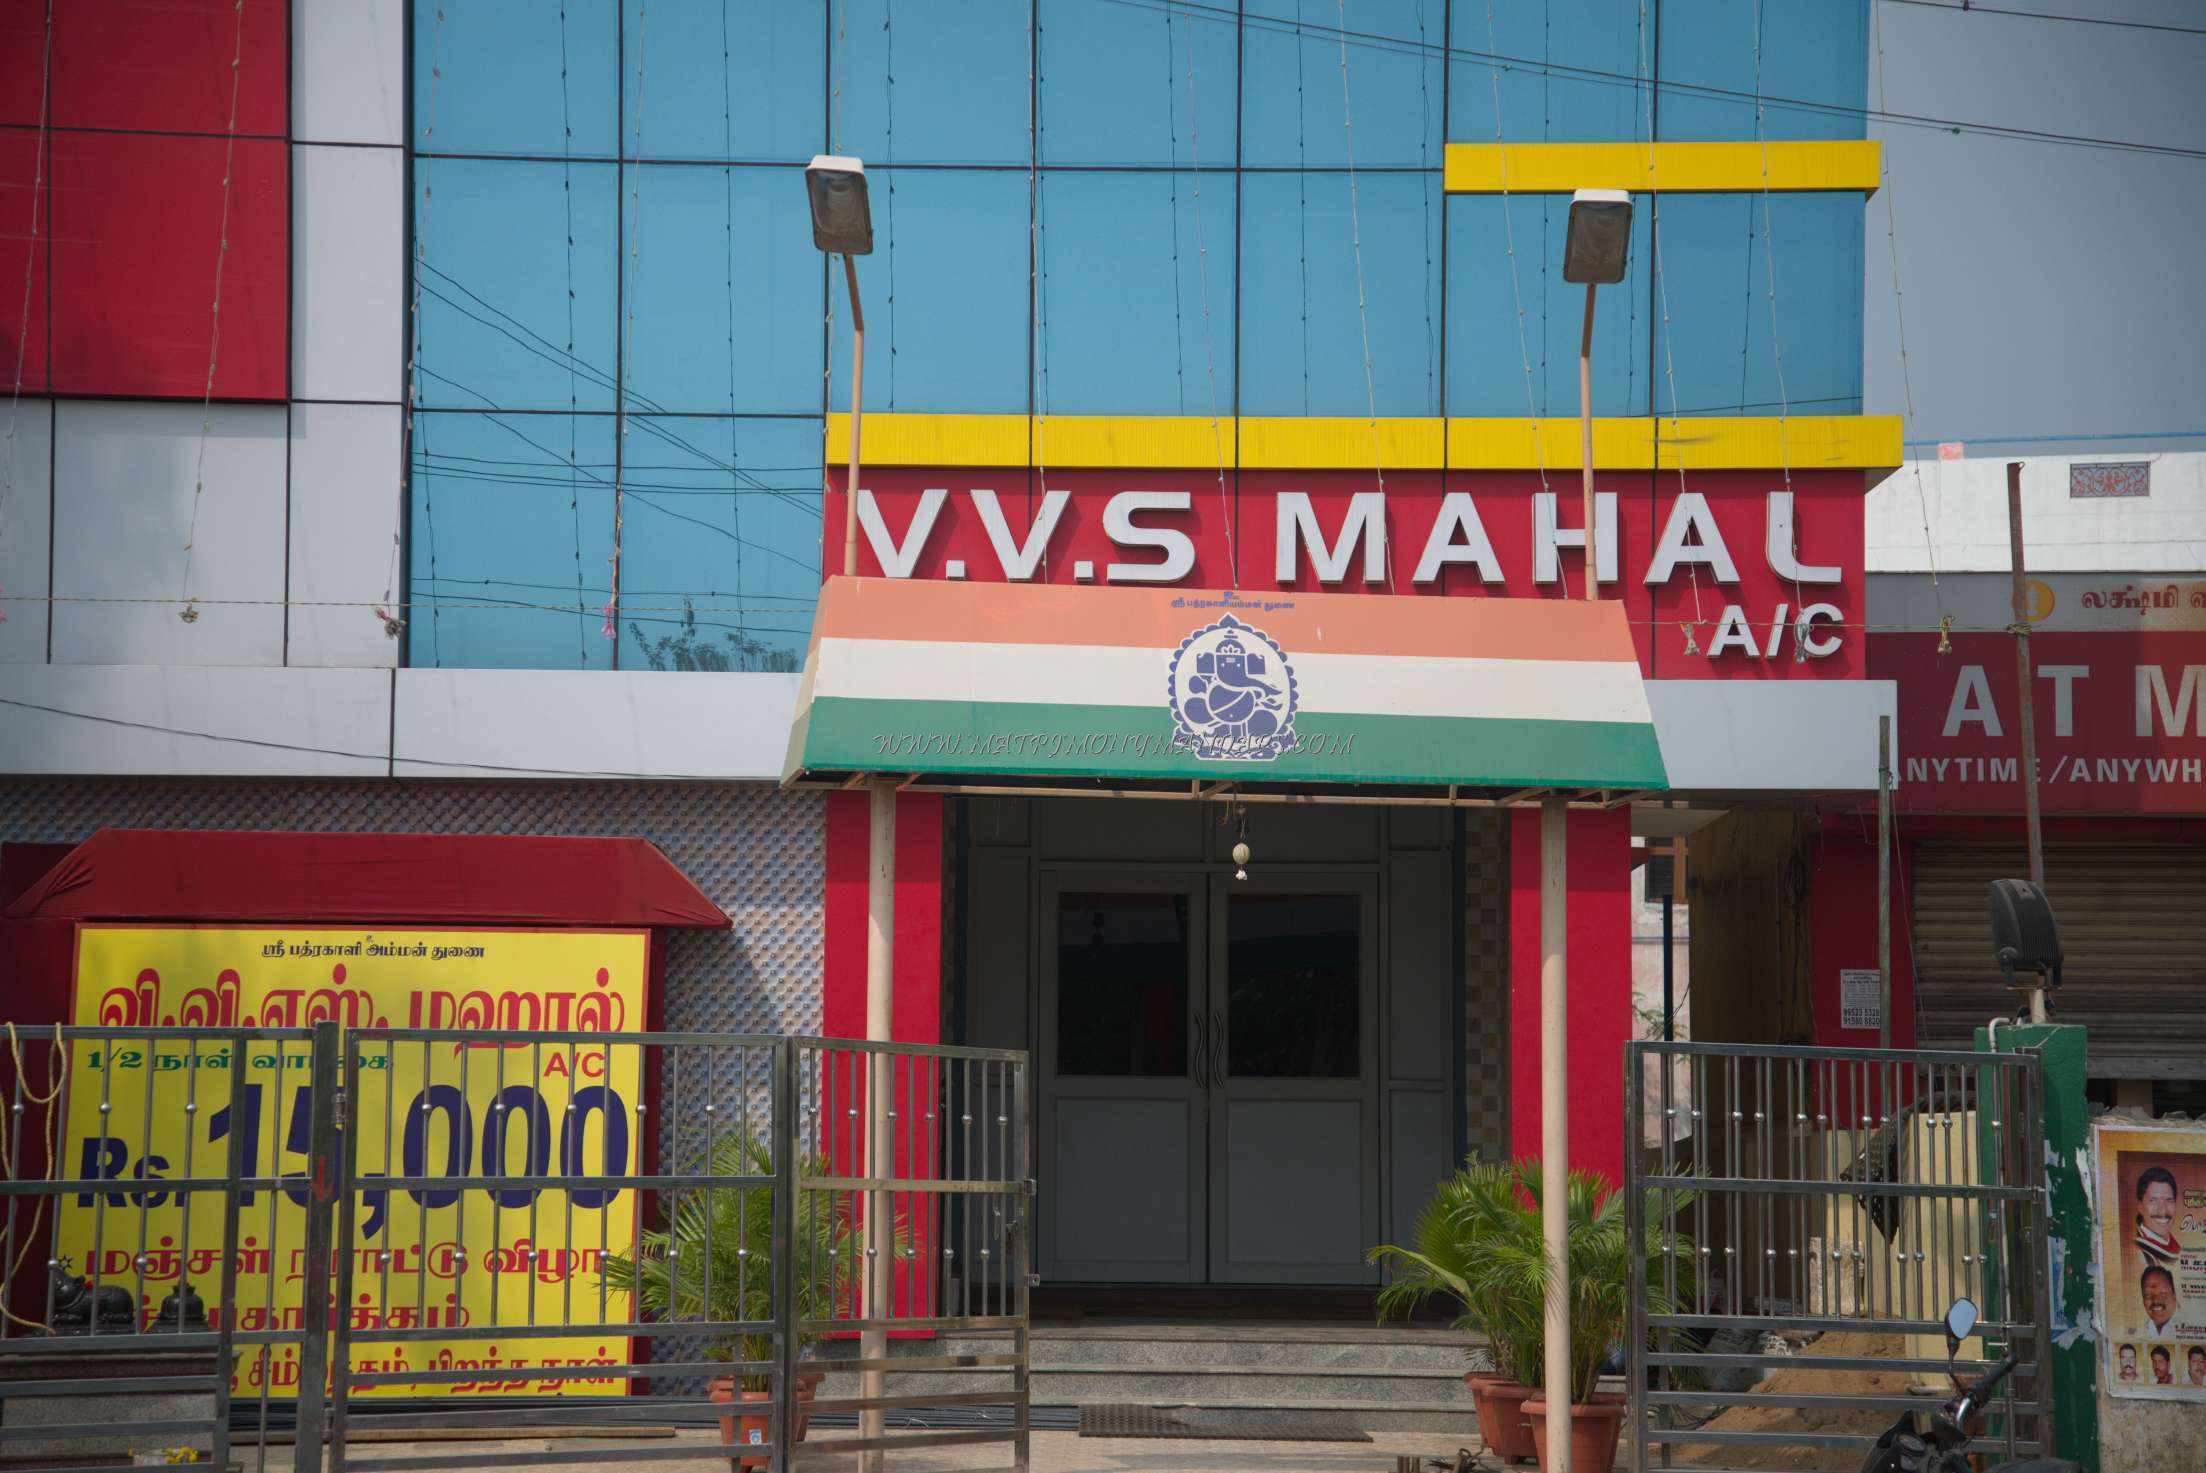 Find the availability of the VVS Mahal in Kundrathur, Chennai and avail special offers